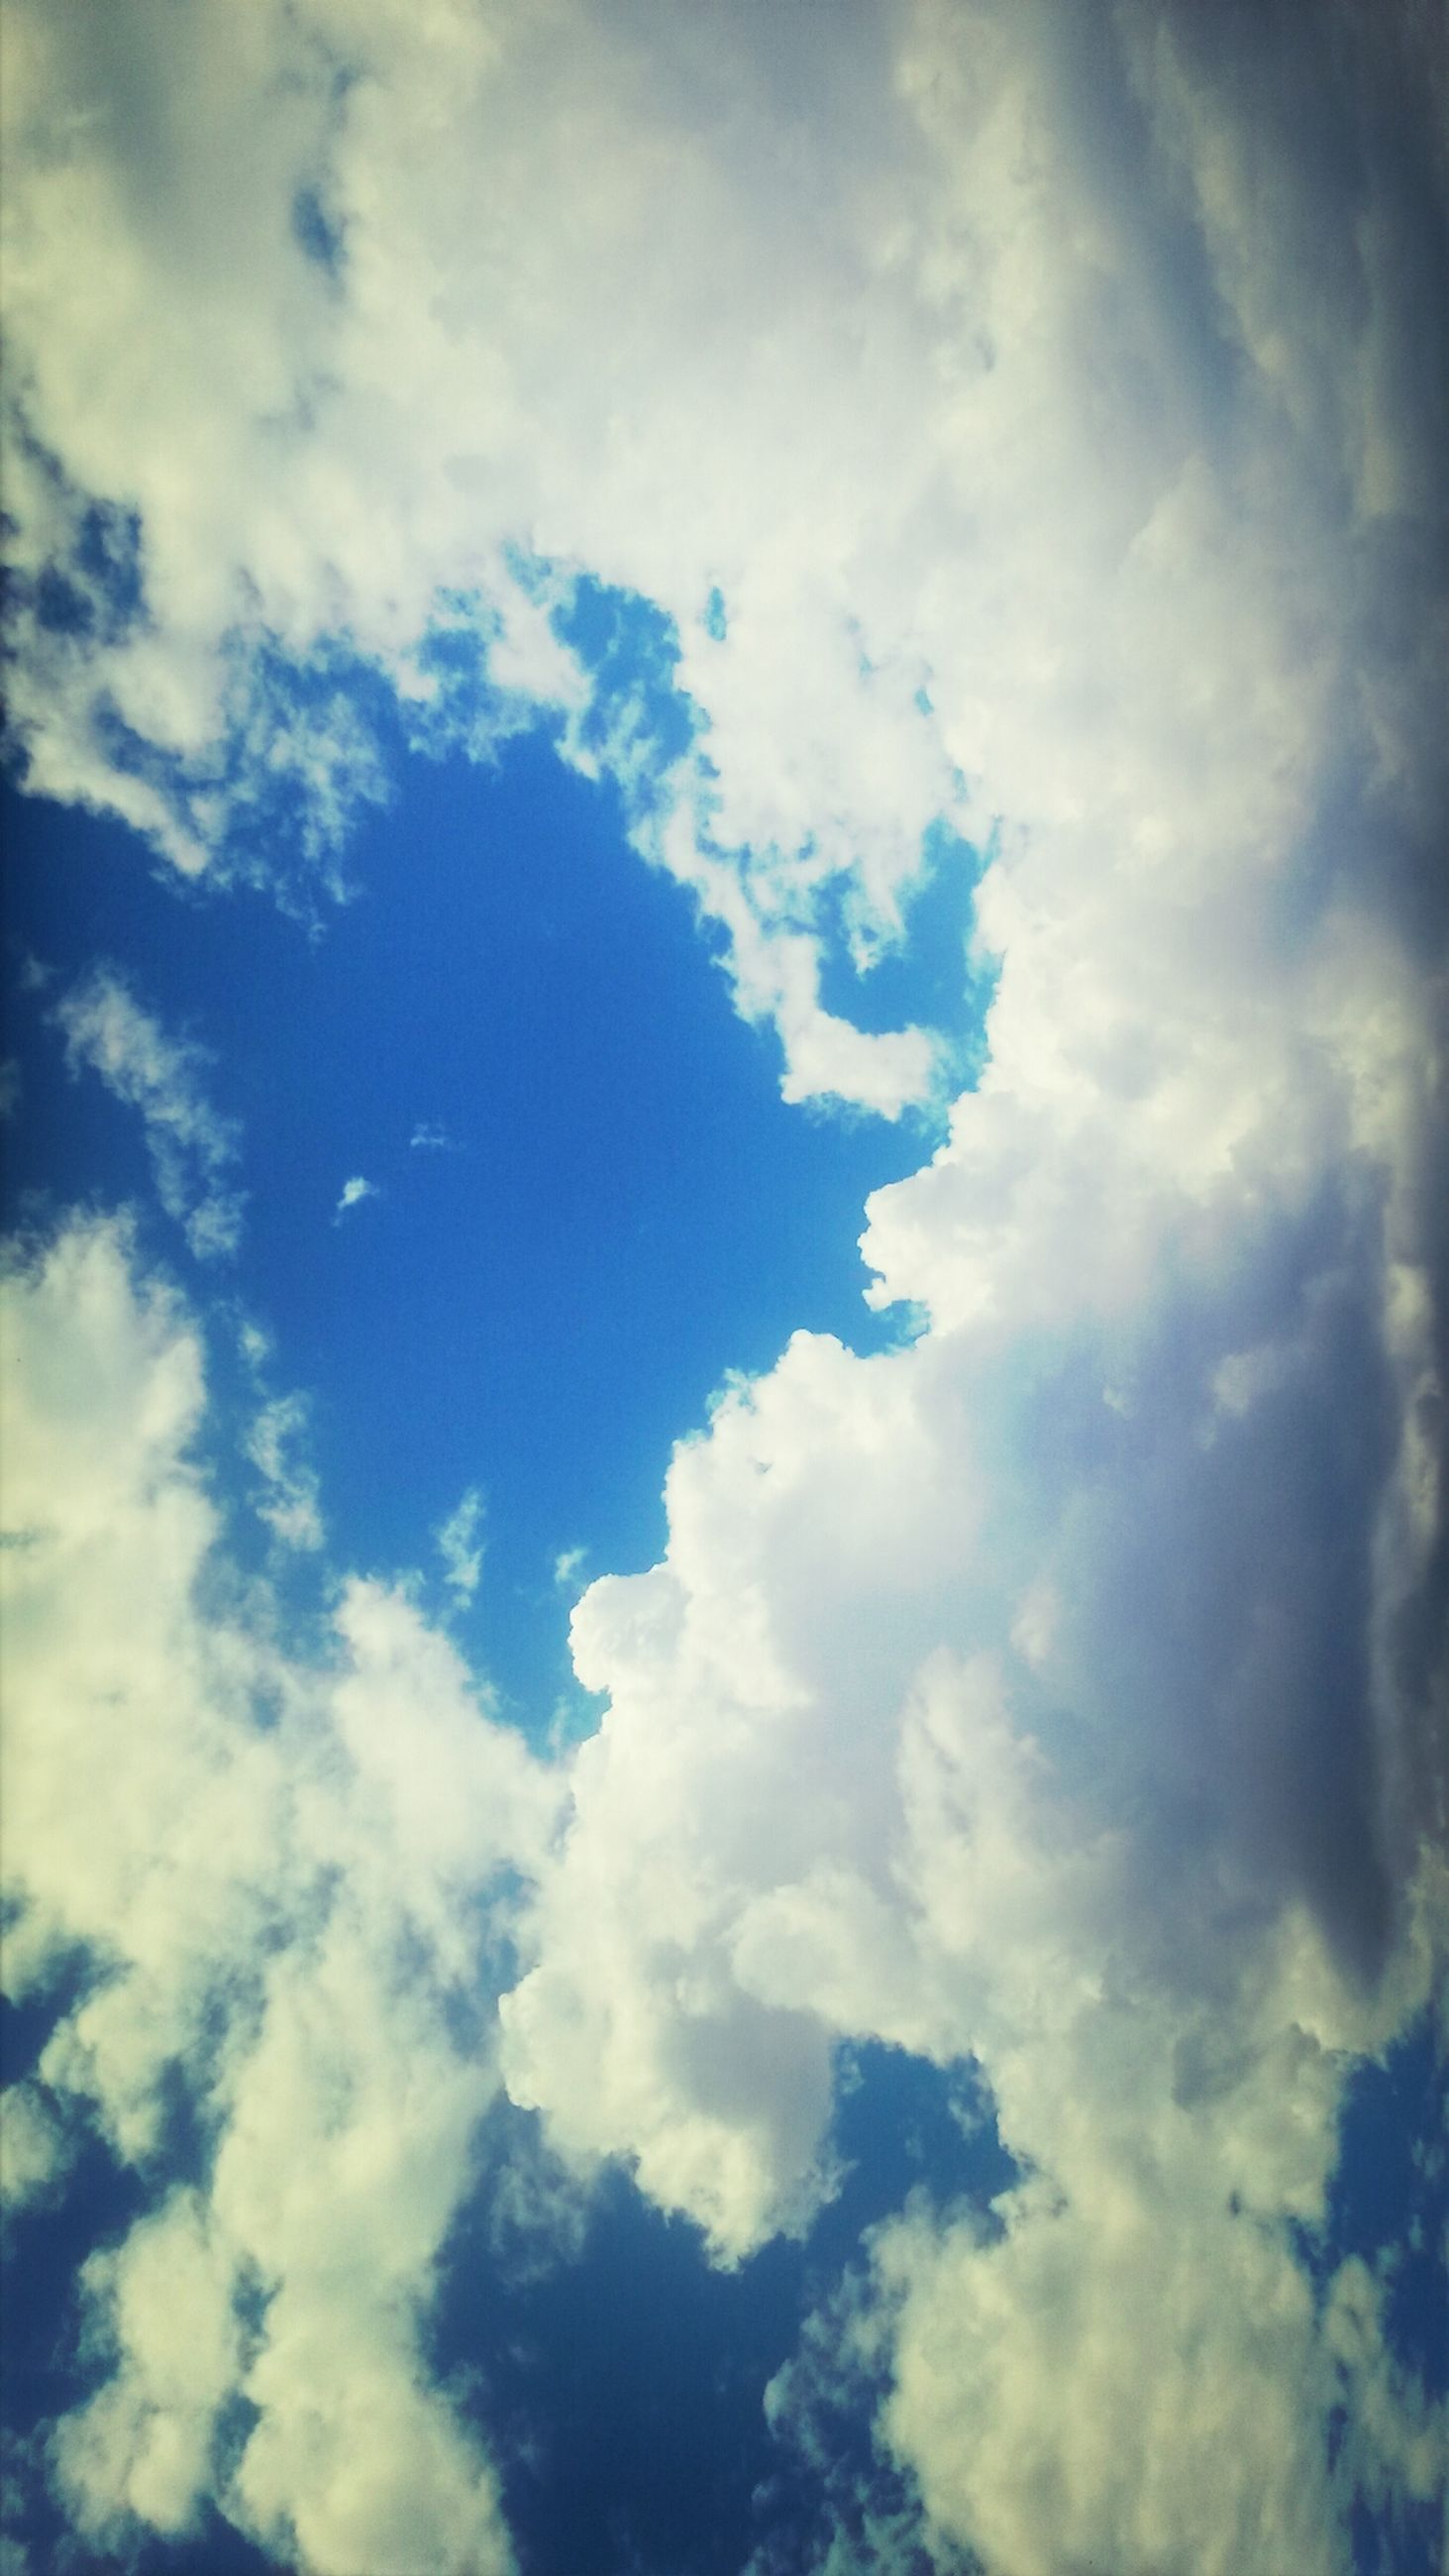 sky, low angle view, cloud - sky, cloudy, sky only, beauty in nature, tranquility, scenics, nature, backgrounds, cloudscape, tranquil scene, full frame, cloud, blue, idyllic, weather, outdoors, white color, no people